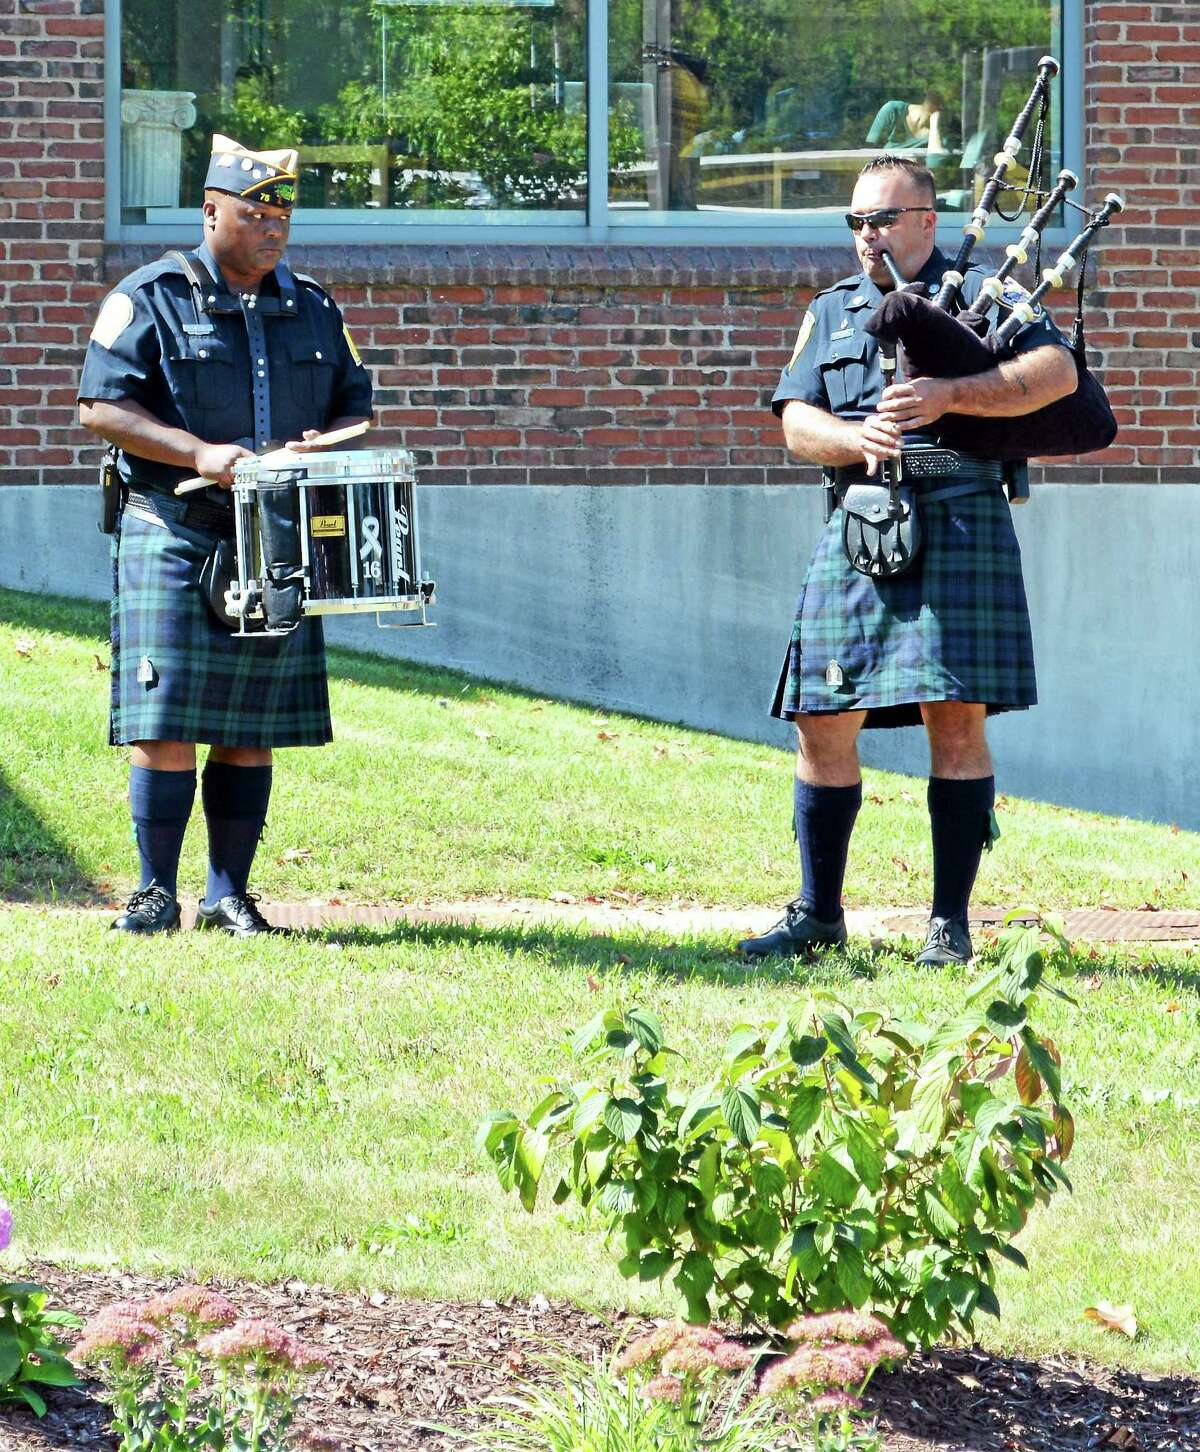 Bagpipers were part of the short ceremony at Middlesex Community College this week.